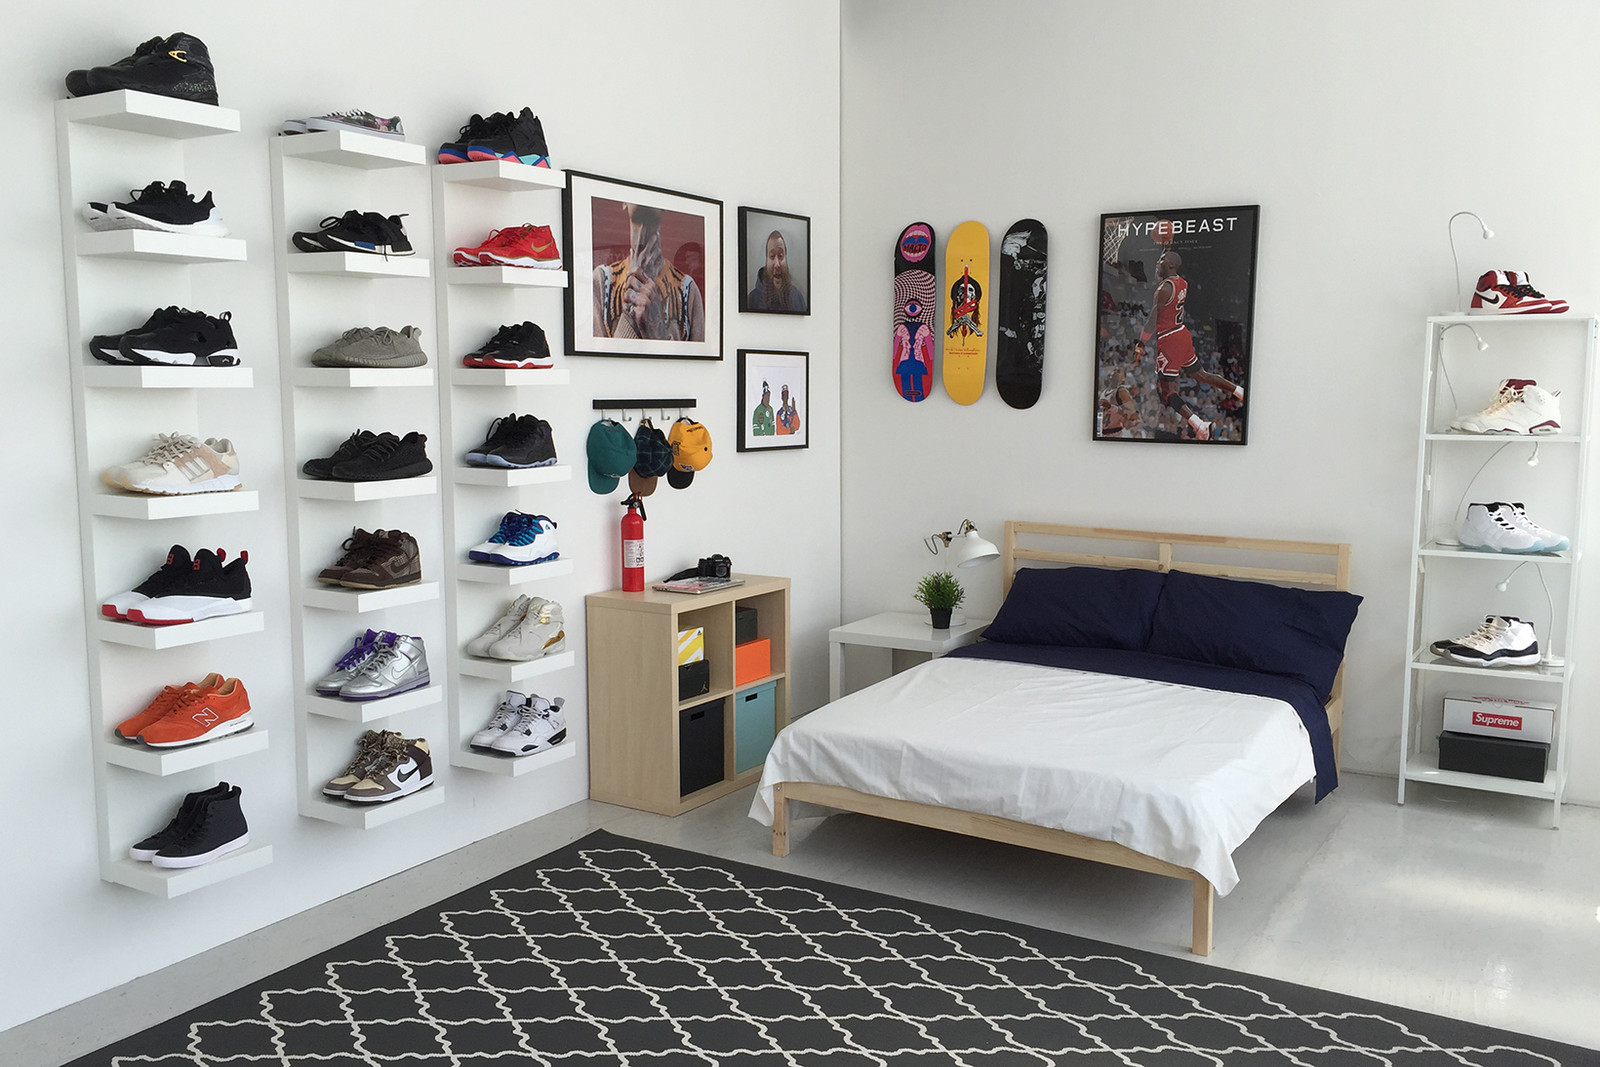 IKEA and HYPEBEAST Design the Ideal Sneakerhead Bedroom | HYPEBEAST